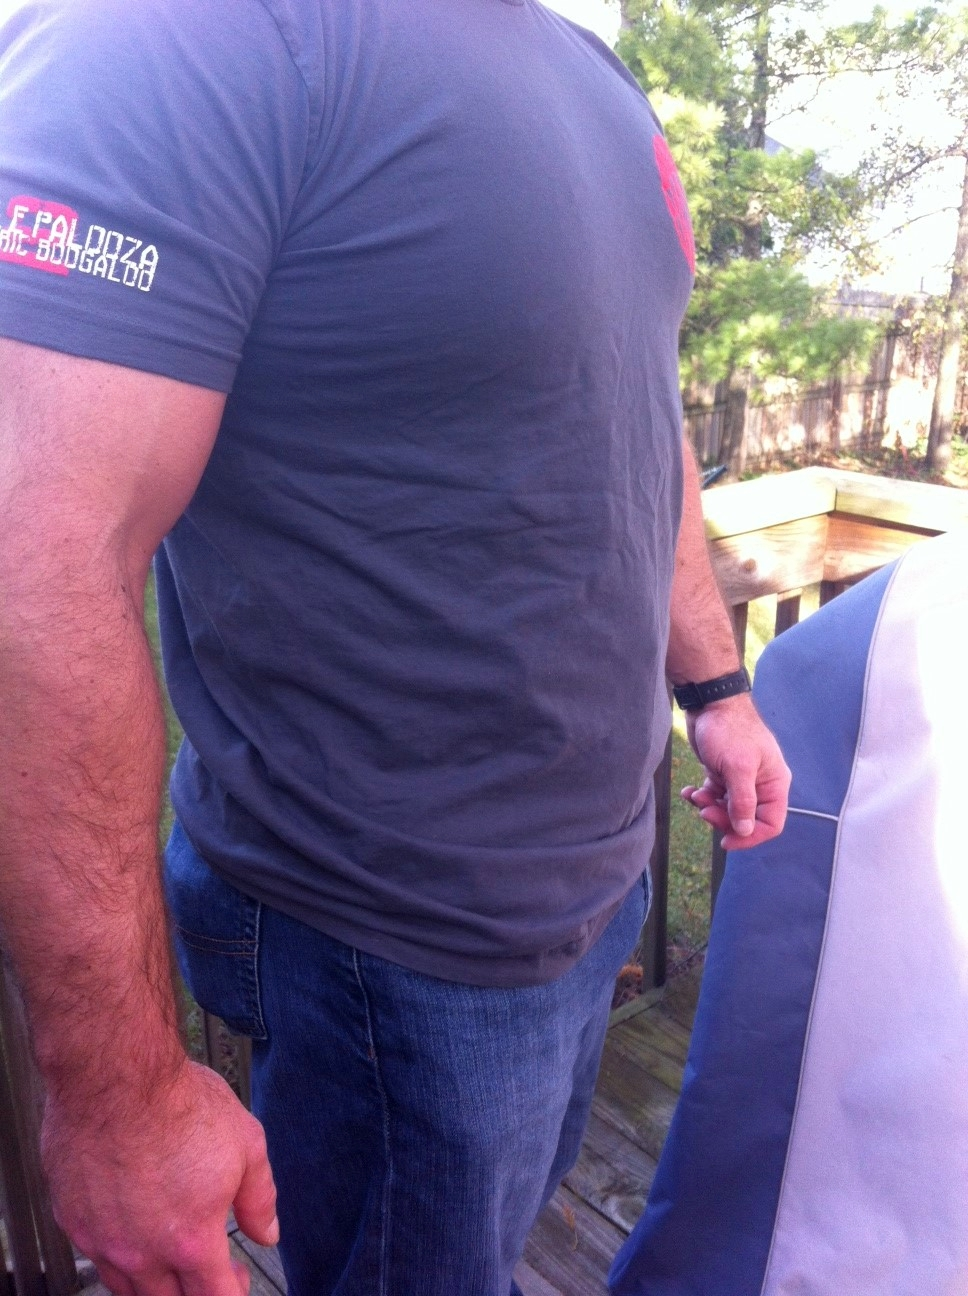 The holster disappears even under a very tight T-shirt